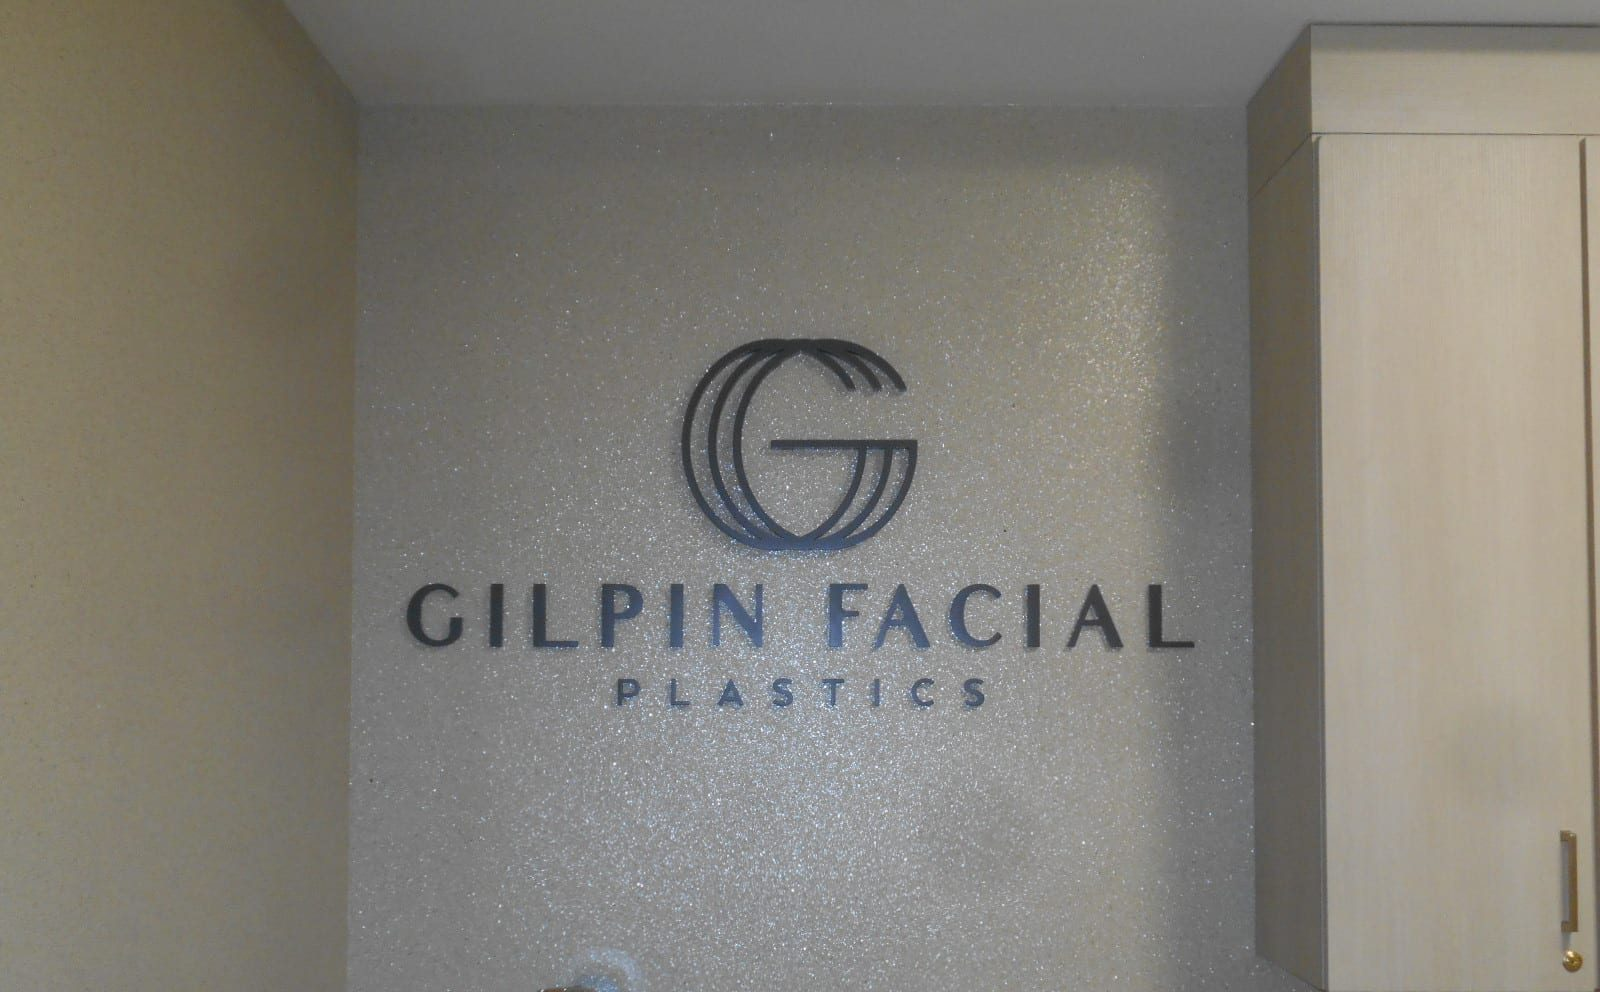 Exquisite business signage for Gilpin Facial by Joslin and Son, Nashville's Local Sign Company.